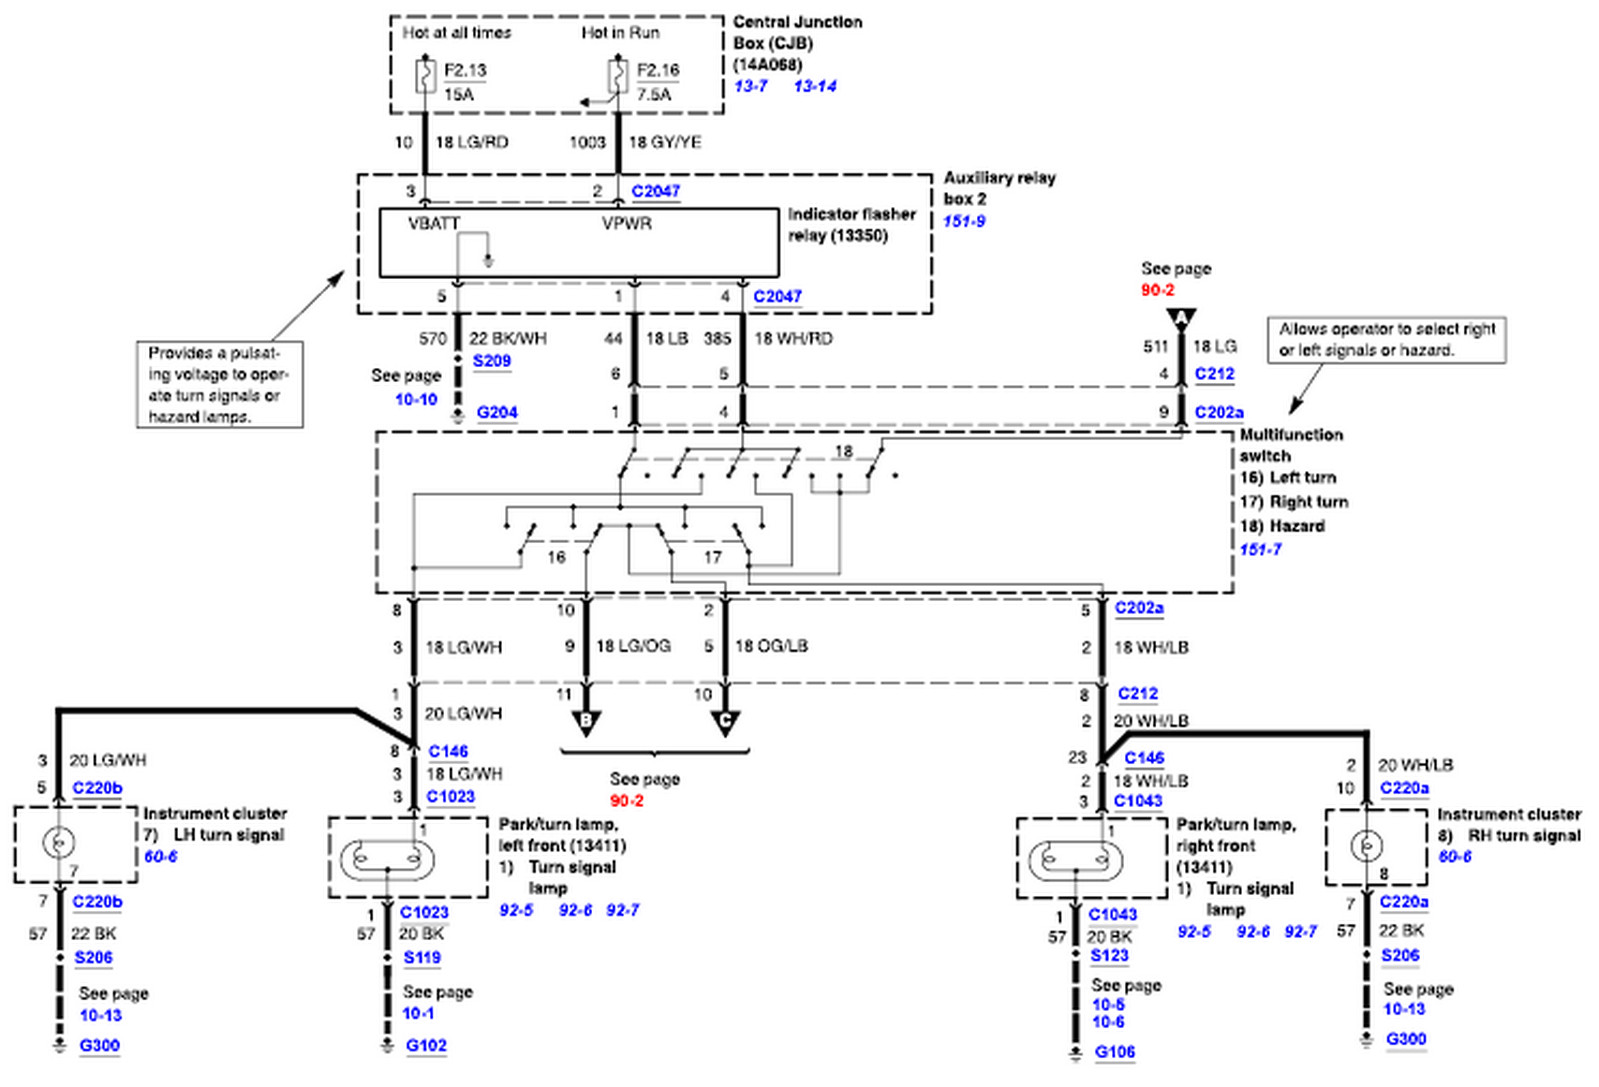 blinker wiring diagram  blinker  free engine image for